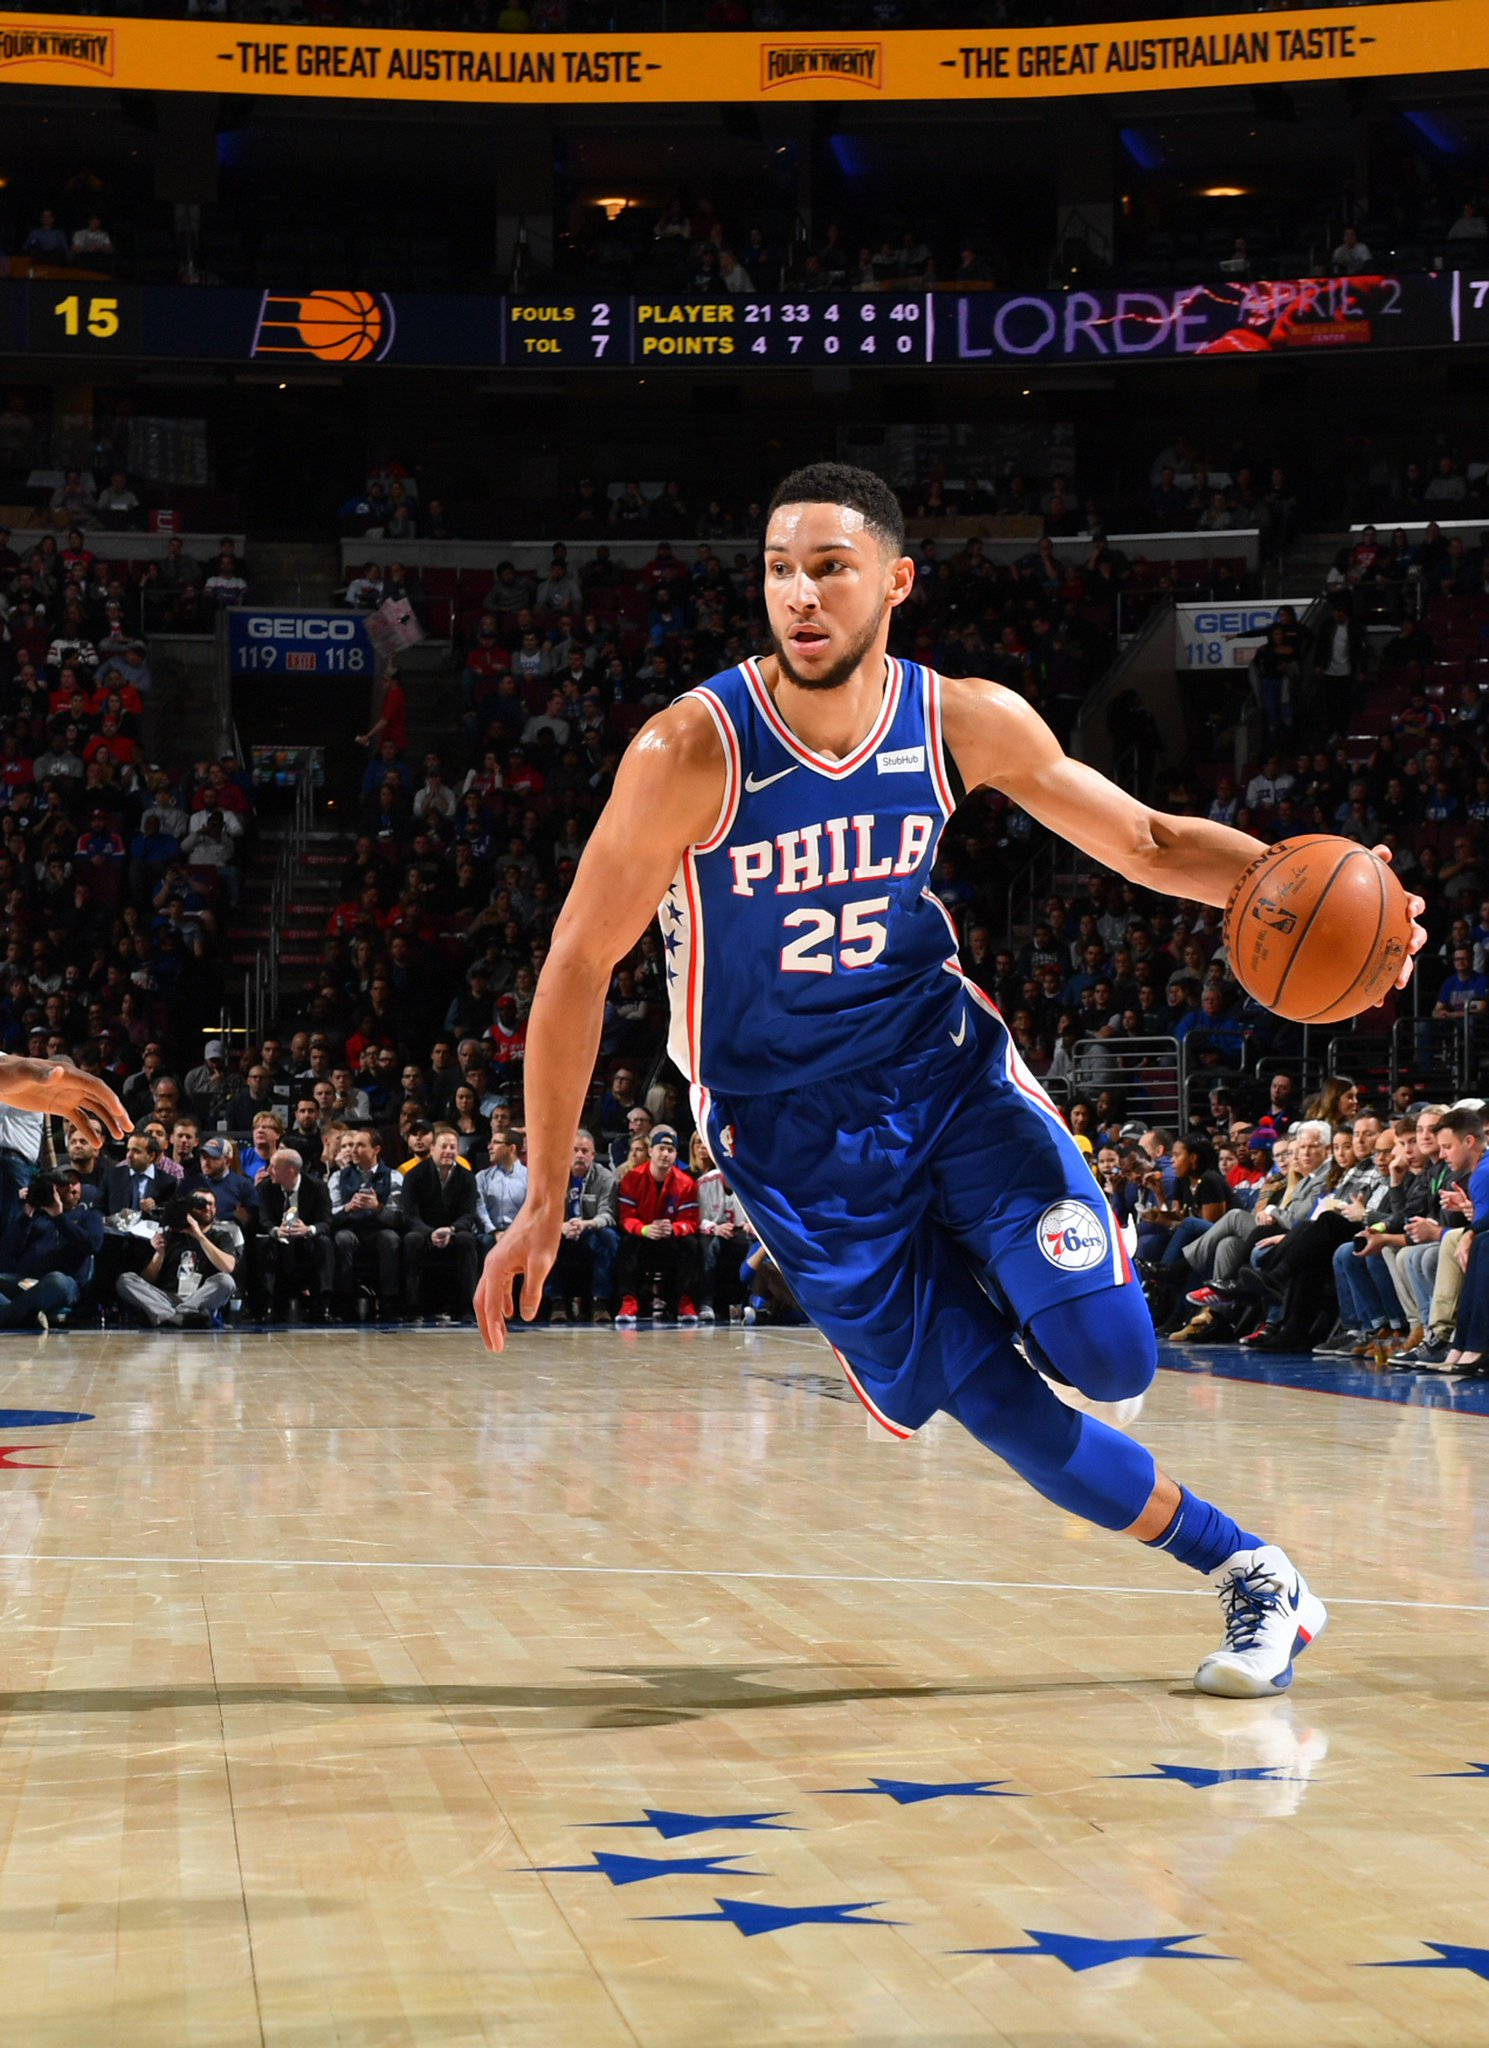 #TripleDoubleWatch   Simmons with 10 points, 9 boards, 8 dimes!  4:13 left in the 3rd #HereTheyCome https://t.co/k43vt3IXE5